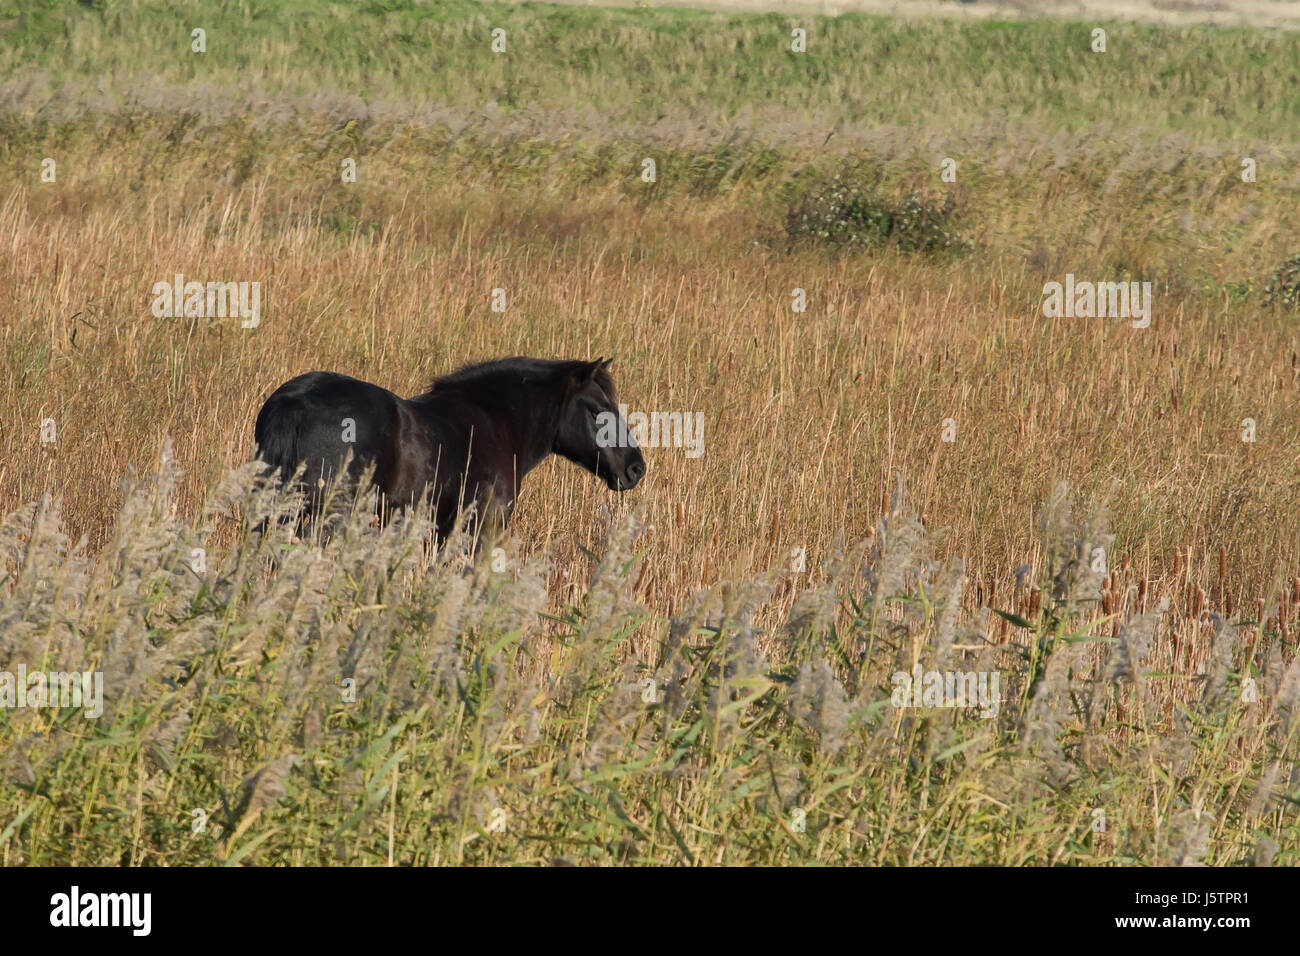 long manes stock photos - photo #30